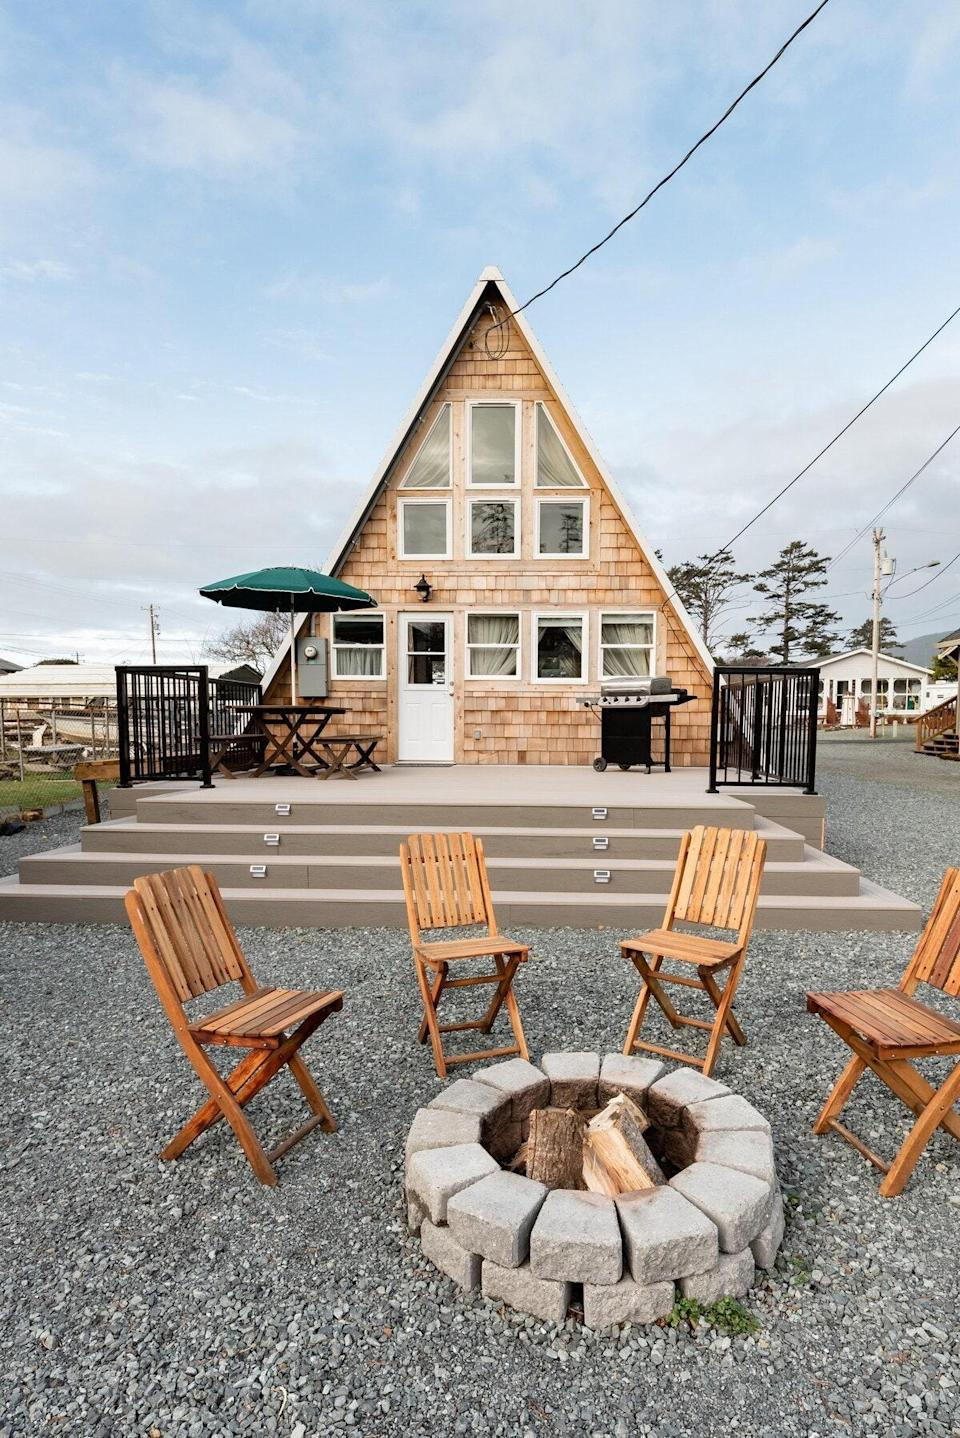 """<strong>Bedrooms:</strong> 2<br> <strong>Bathrooms:</strong> 1<br> <strong>Minimum stay:</strong> 2 nights<br> <br> Rockaway Beach has been a bustling tourist destination since the 1920s. Mountains meet the sea in this coastal town, and there's plenty to see and do. Explore the local tide pools, take a ride on a steam engine train past Tillamook Bay, head over to the Cedar Old Growth Nature Preserve, or check out charming restaurants, boutiques, and antiques shops all within walking distance of this sweet A-frame cabin that sits just off the beach. (And if you need, feel free to pack up the dog bed—pets are welcome, and the hosts are known to leave treats and bags out for pets.) $160, Airbnb (Starting Price). <a href=""""https://www.airbnb.com/rooms/plus/30719878"""" rel=""""nofollow noopener"""" target=""""_blank"""" data-ylk=""""slk:Get it now!"""" class=""""link rapid-noclick-resp"""">Get it now!</a>"""